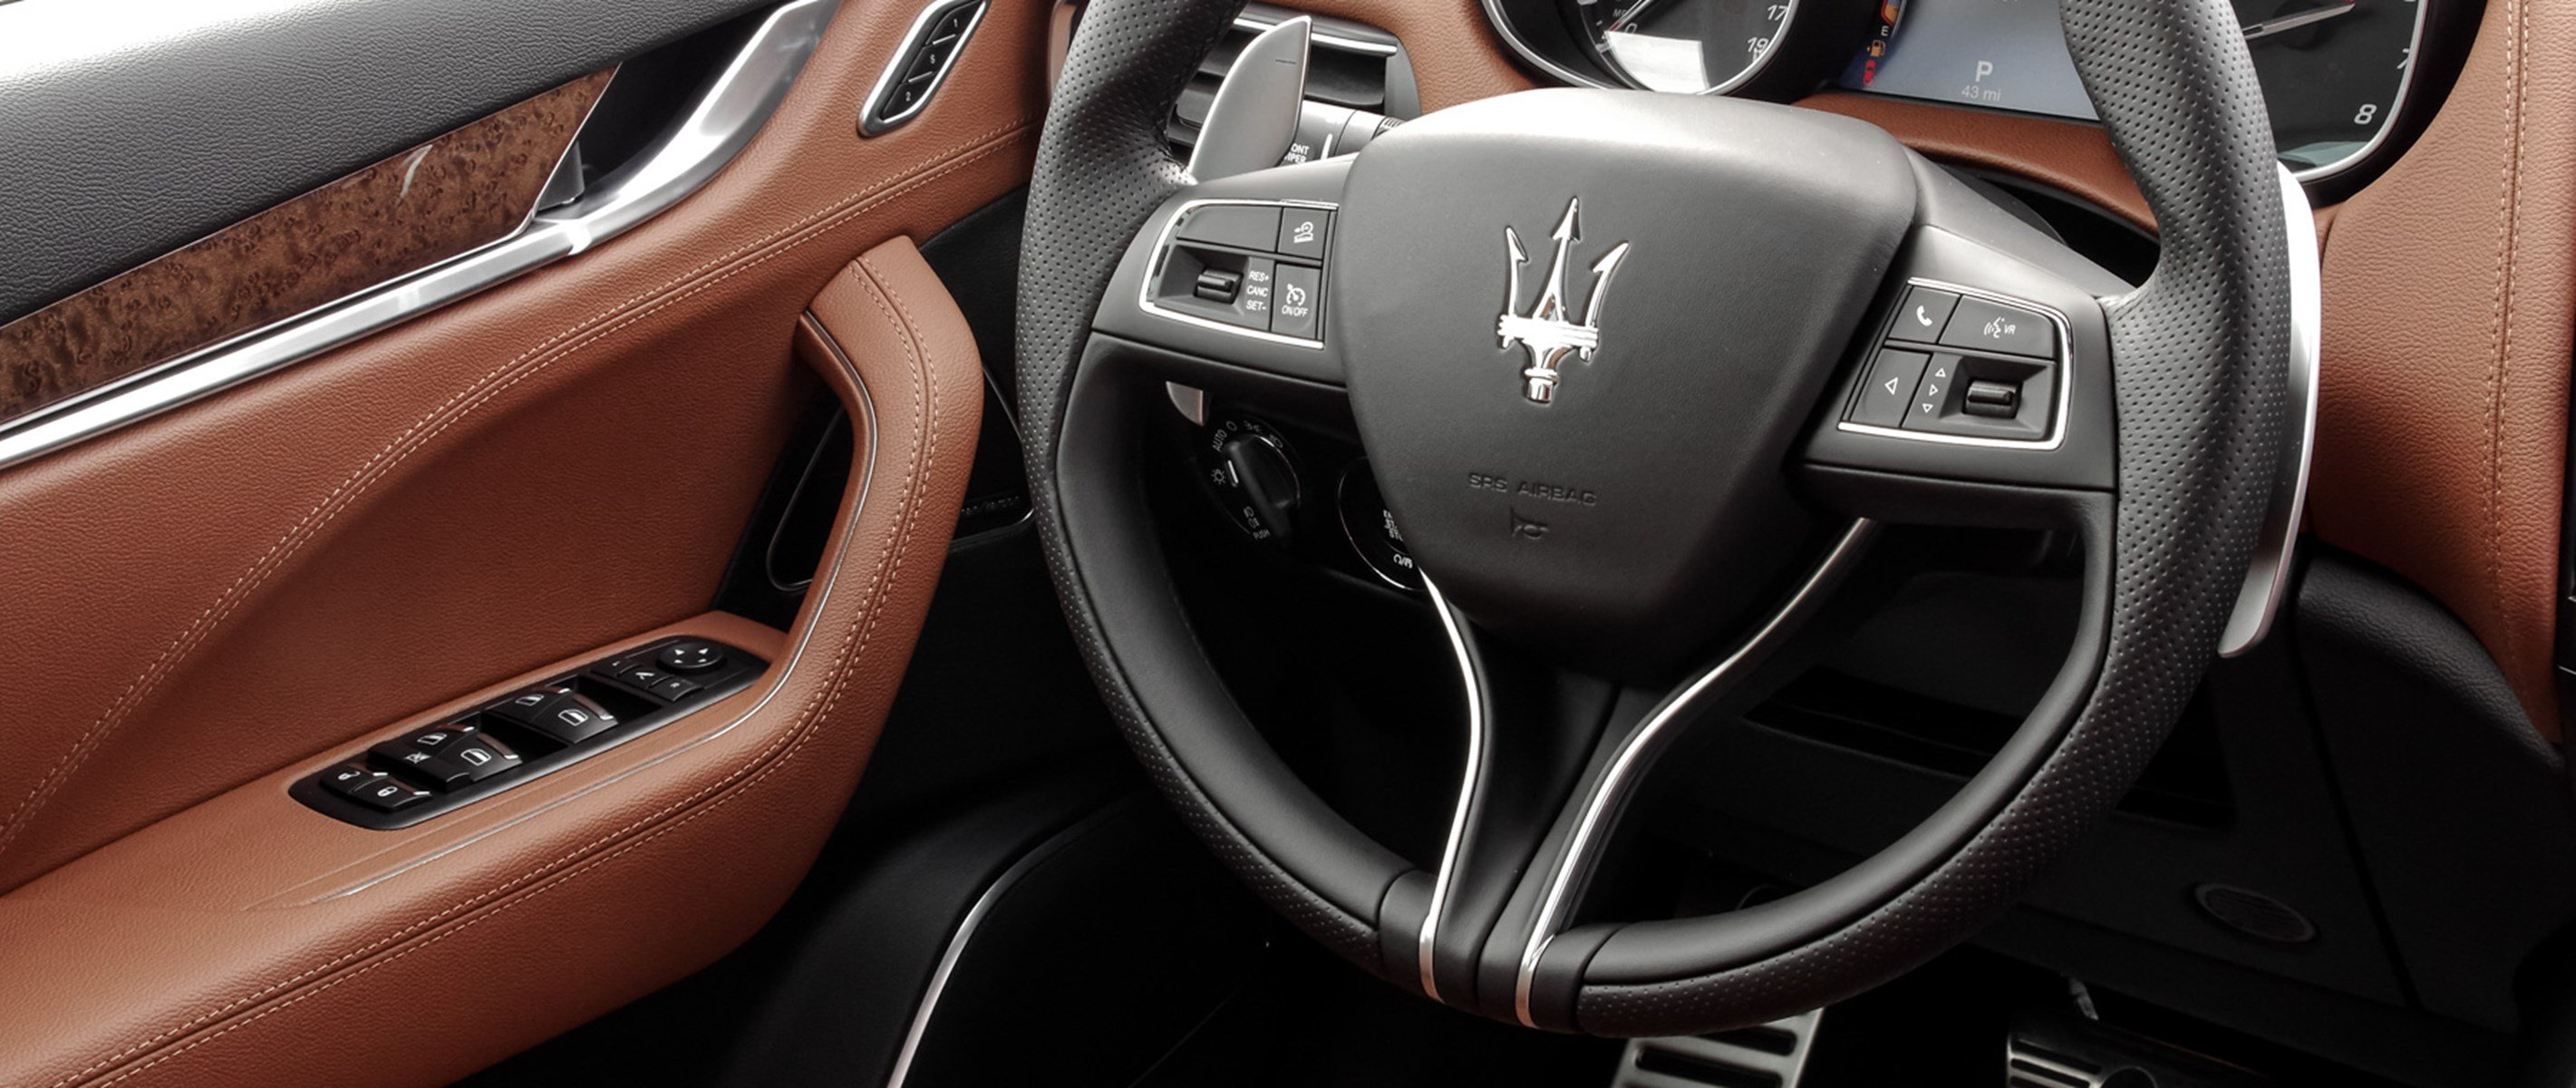 Maserati of Salt Lake City